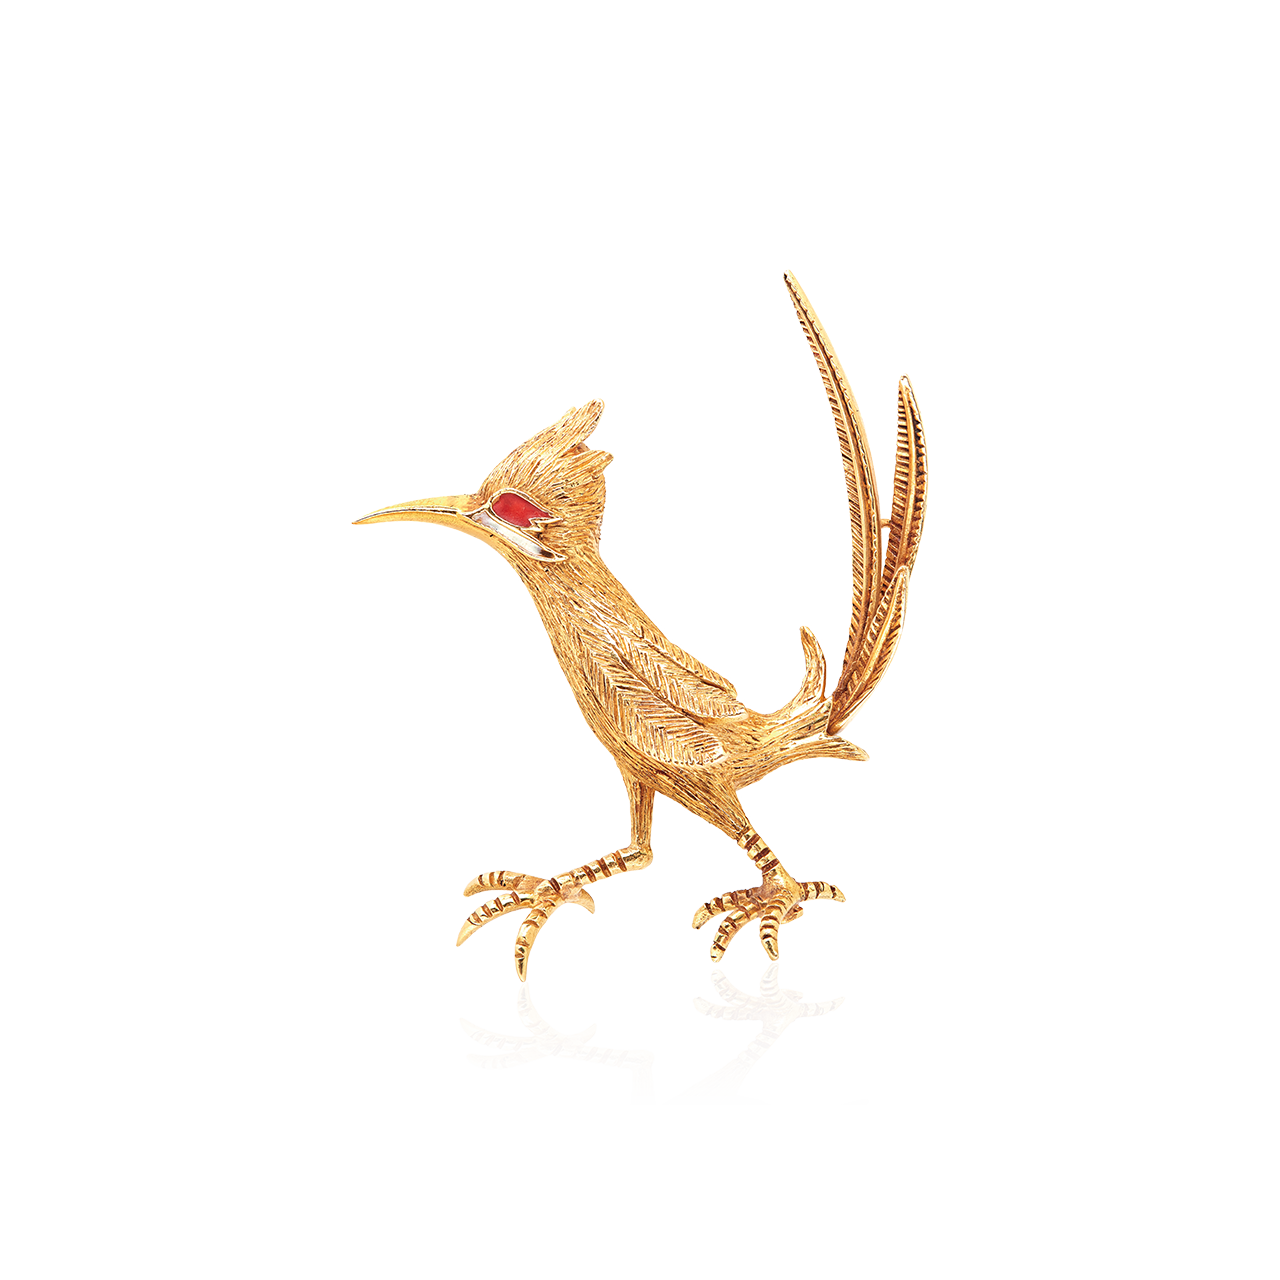 法國古董黃金紅寶嗶嗶鳥造型胸針, CIRCA 1960